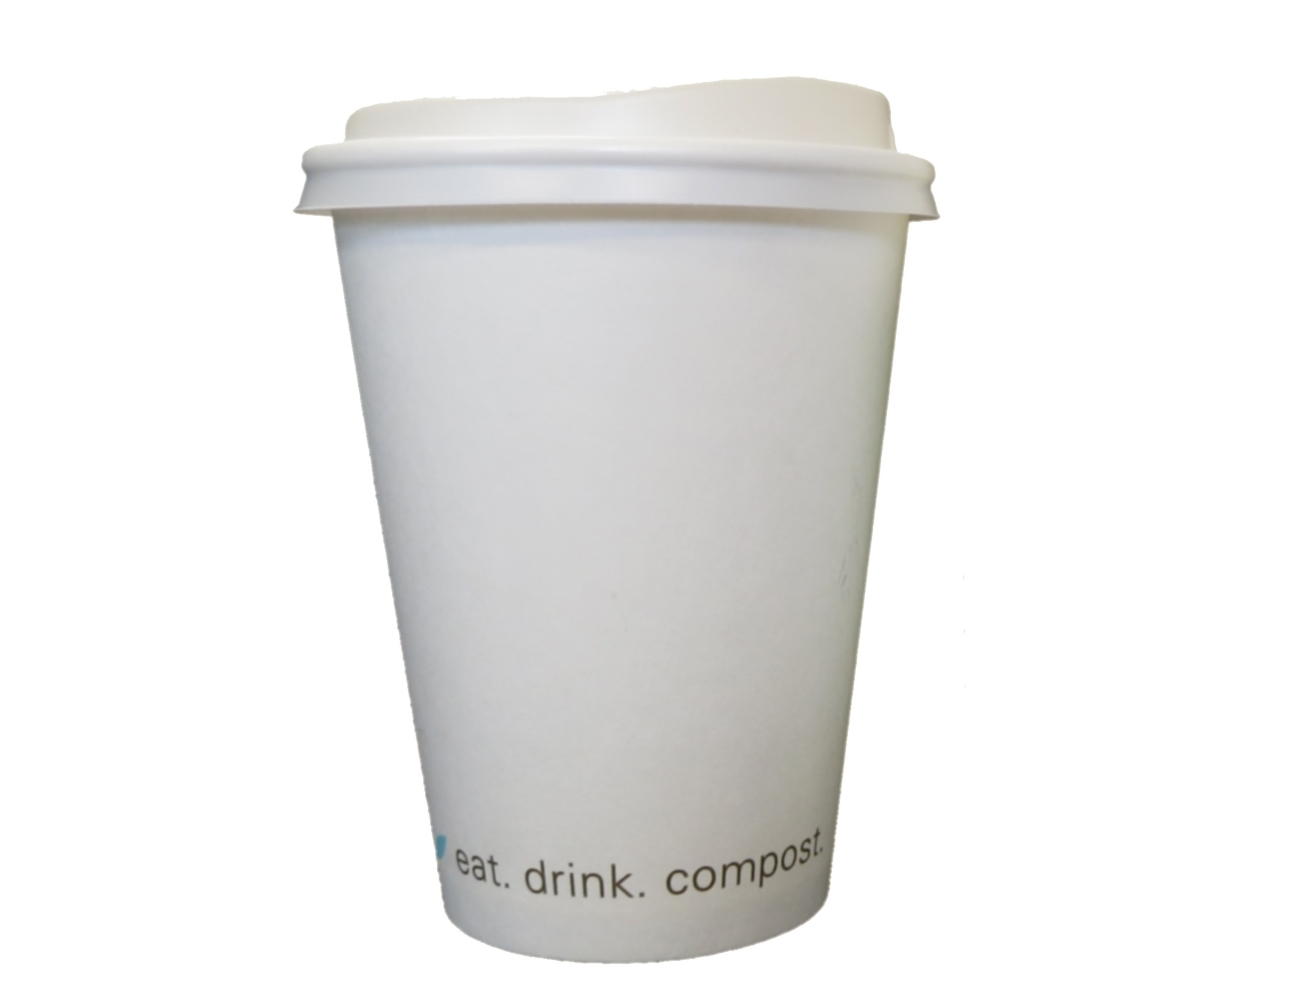 Small Pix Of Large Cups To : BÉsics quality compostable products retail